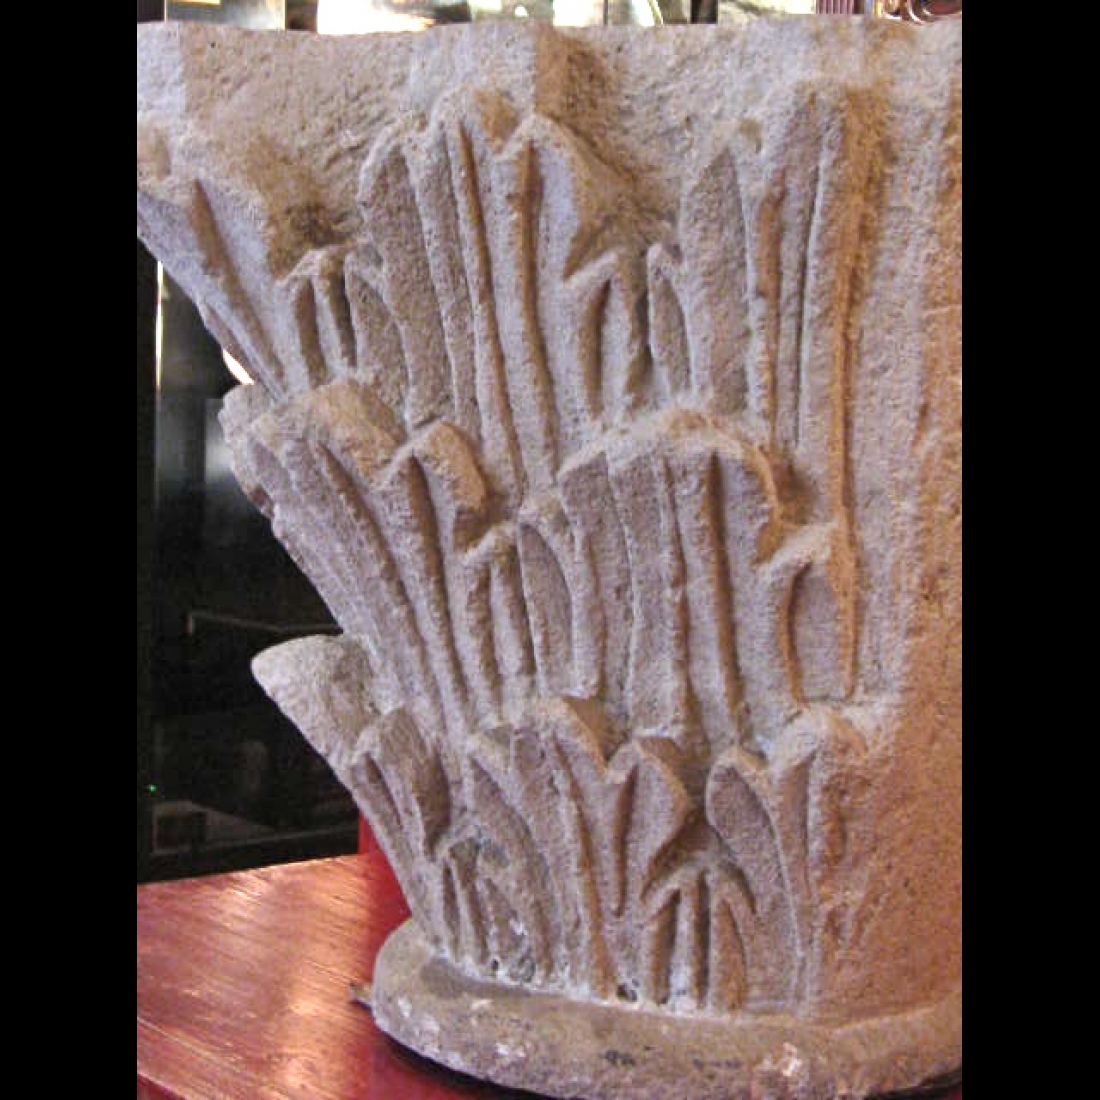 Photo ofLIMESTONE CORINTHIAN ORDER COLUMN CAPITAL